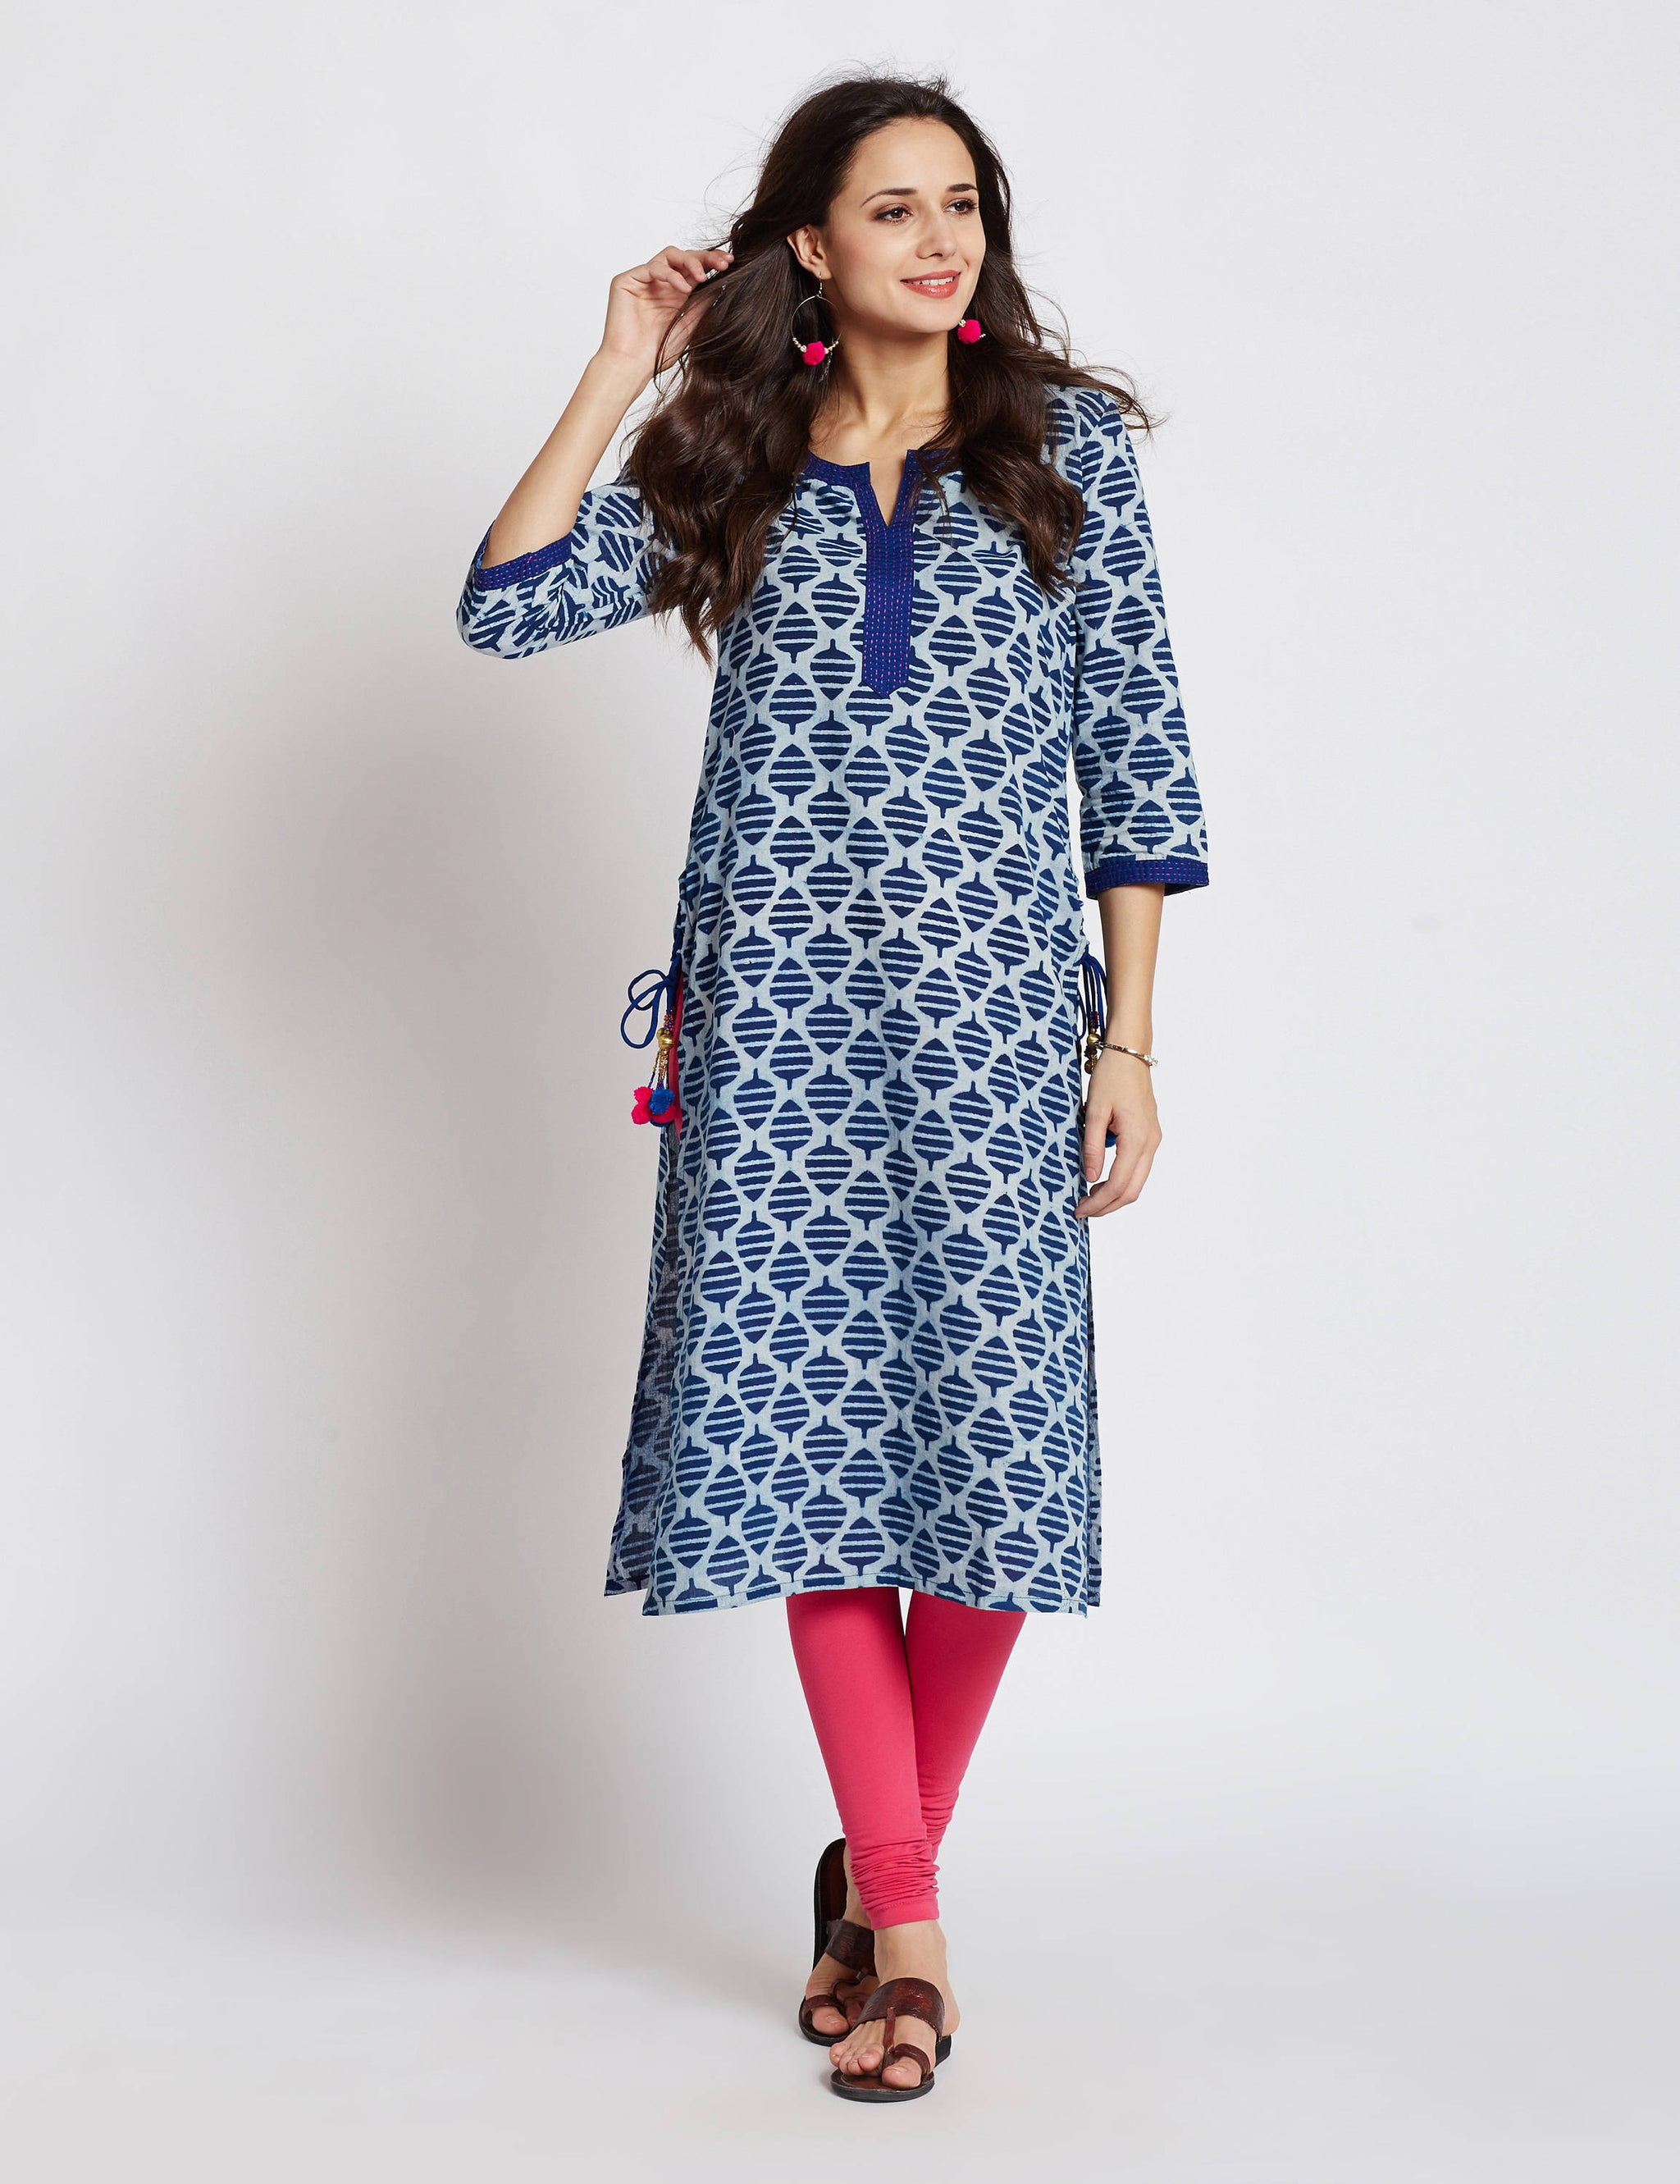 Indigo Hand block printed ethnic long Indian kurta with side tassels and hand embroidery on neck and sleeves